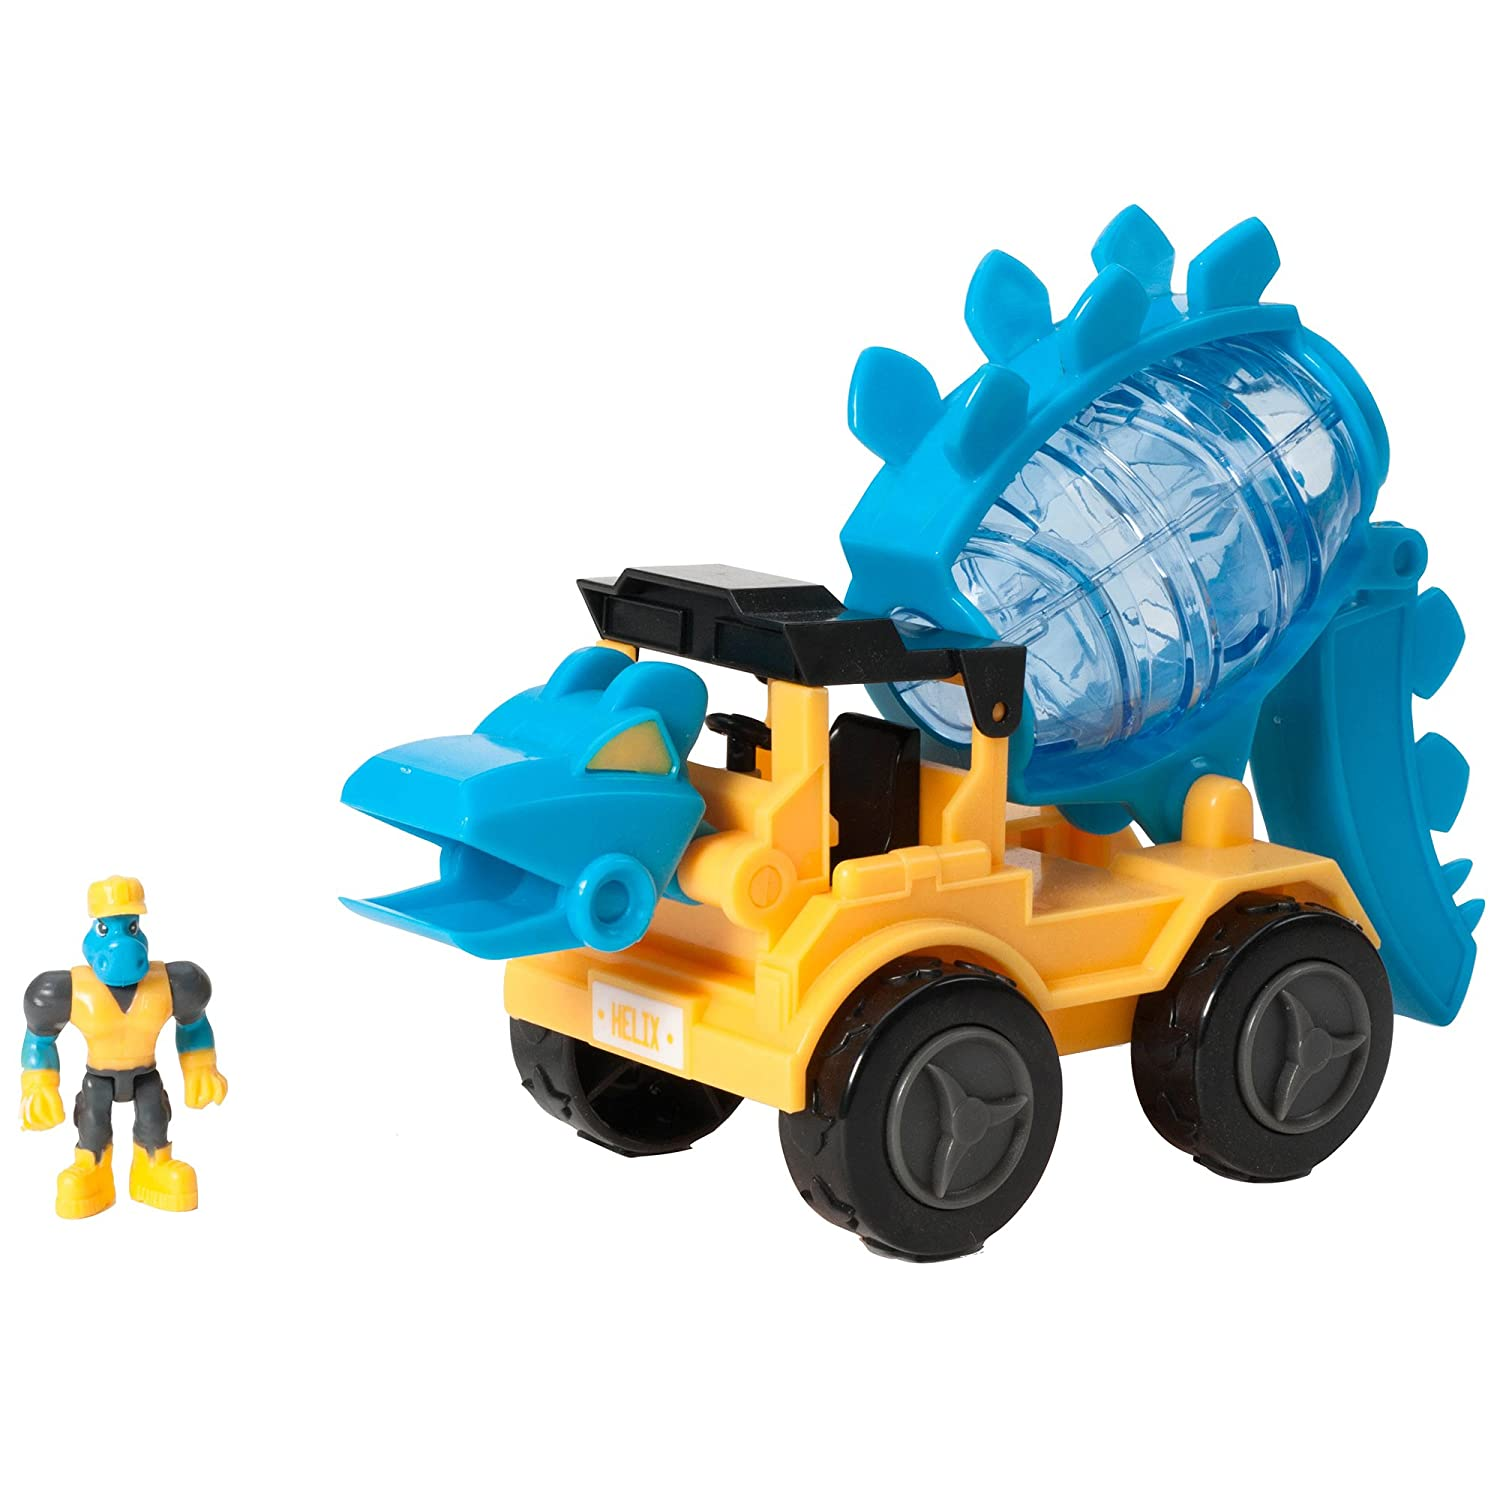 Learning Resources Dino Construction Company Stegosaurus toy Cement Truck Learning Resources (UK Direct Account) EI-4157